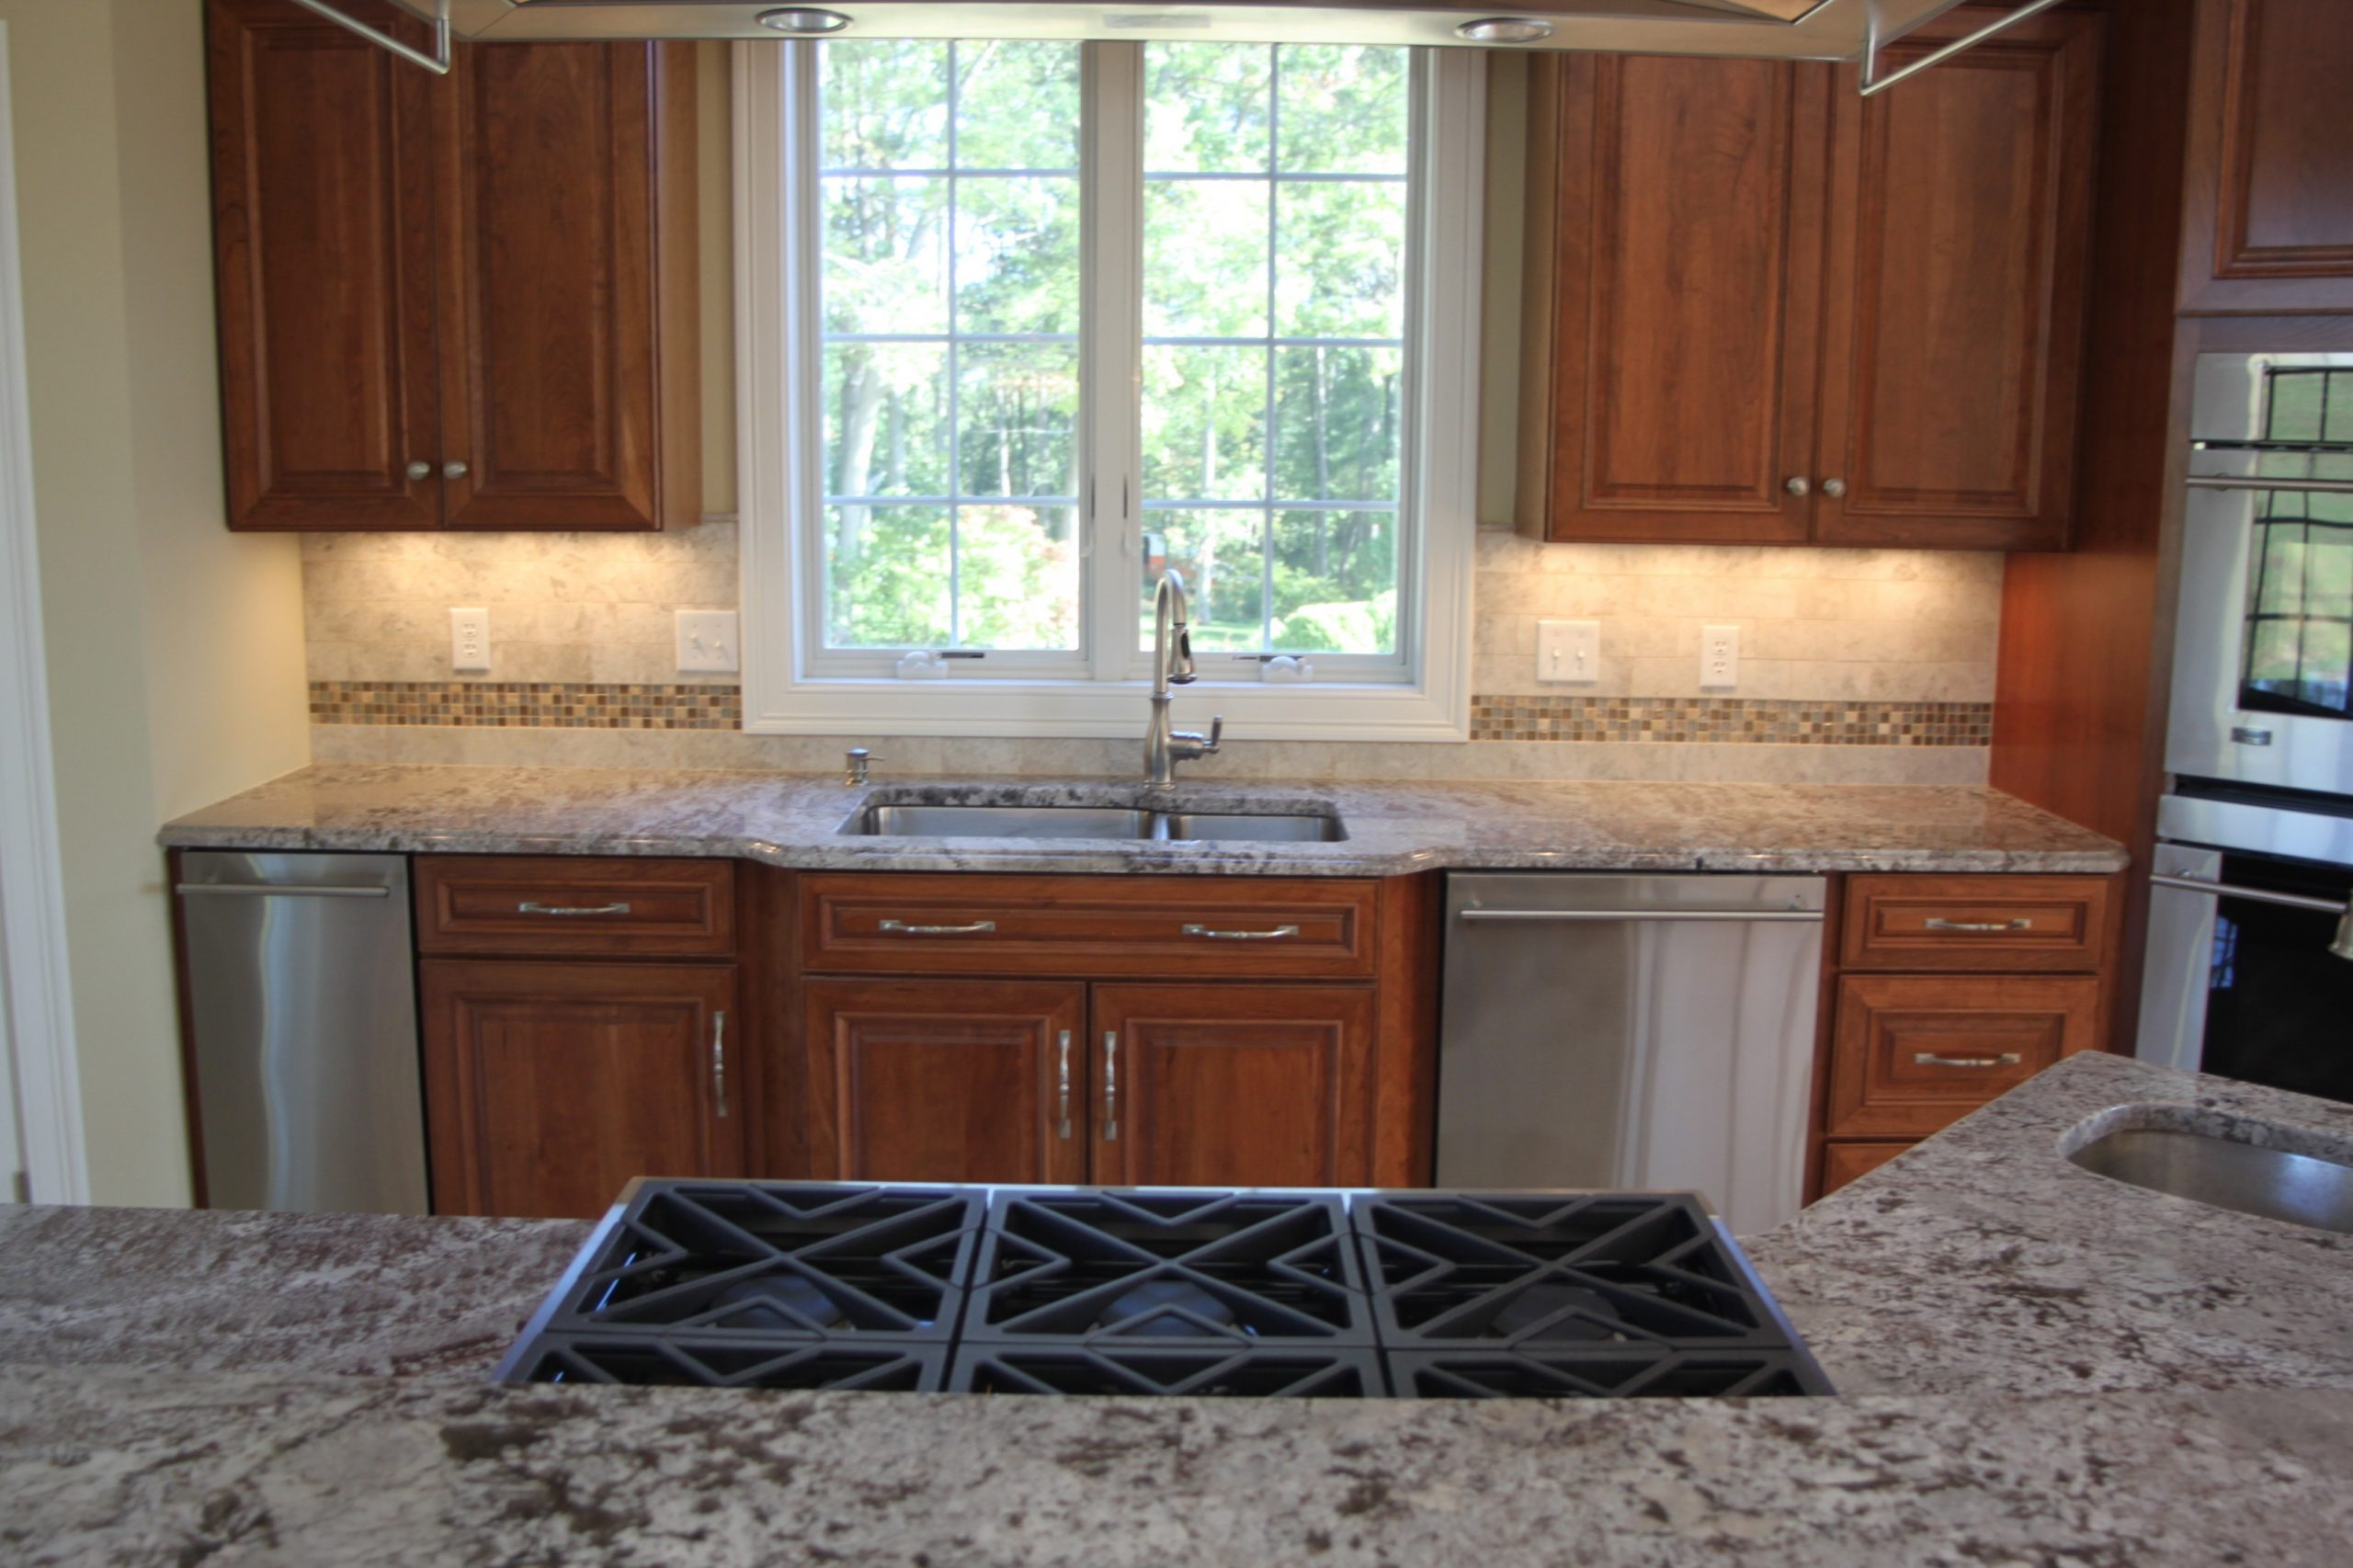 Matching Countertops to Cabinets  Dalene Flooring - Matching Kitchen Cabinets And Flooring